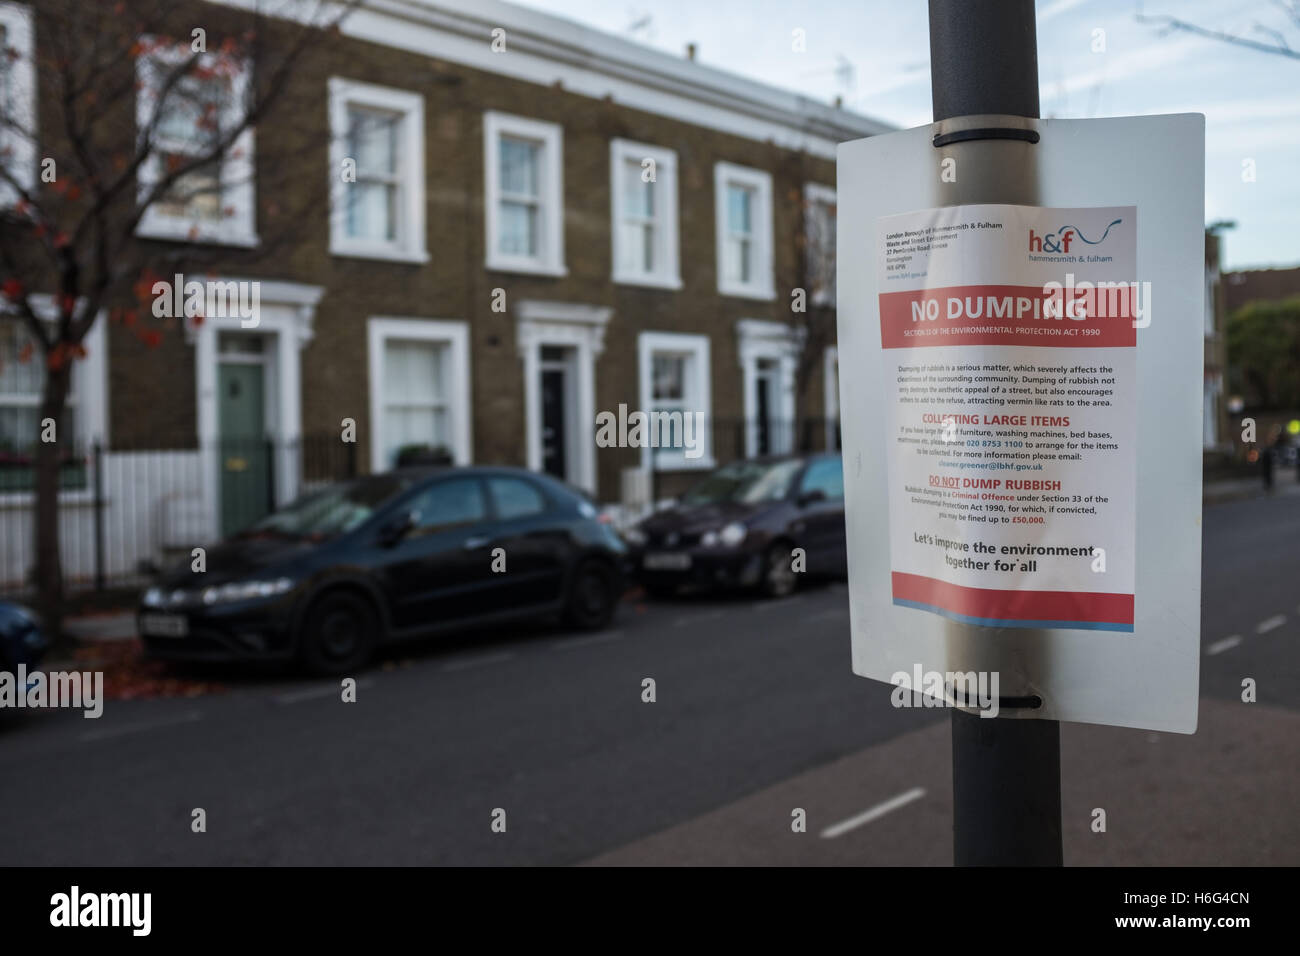 No Dumping sign on a lamppost in a Chelsea street - Stock Image